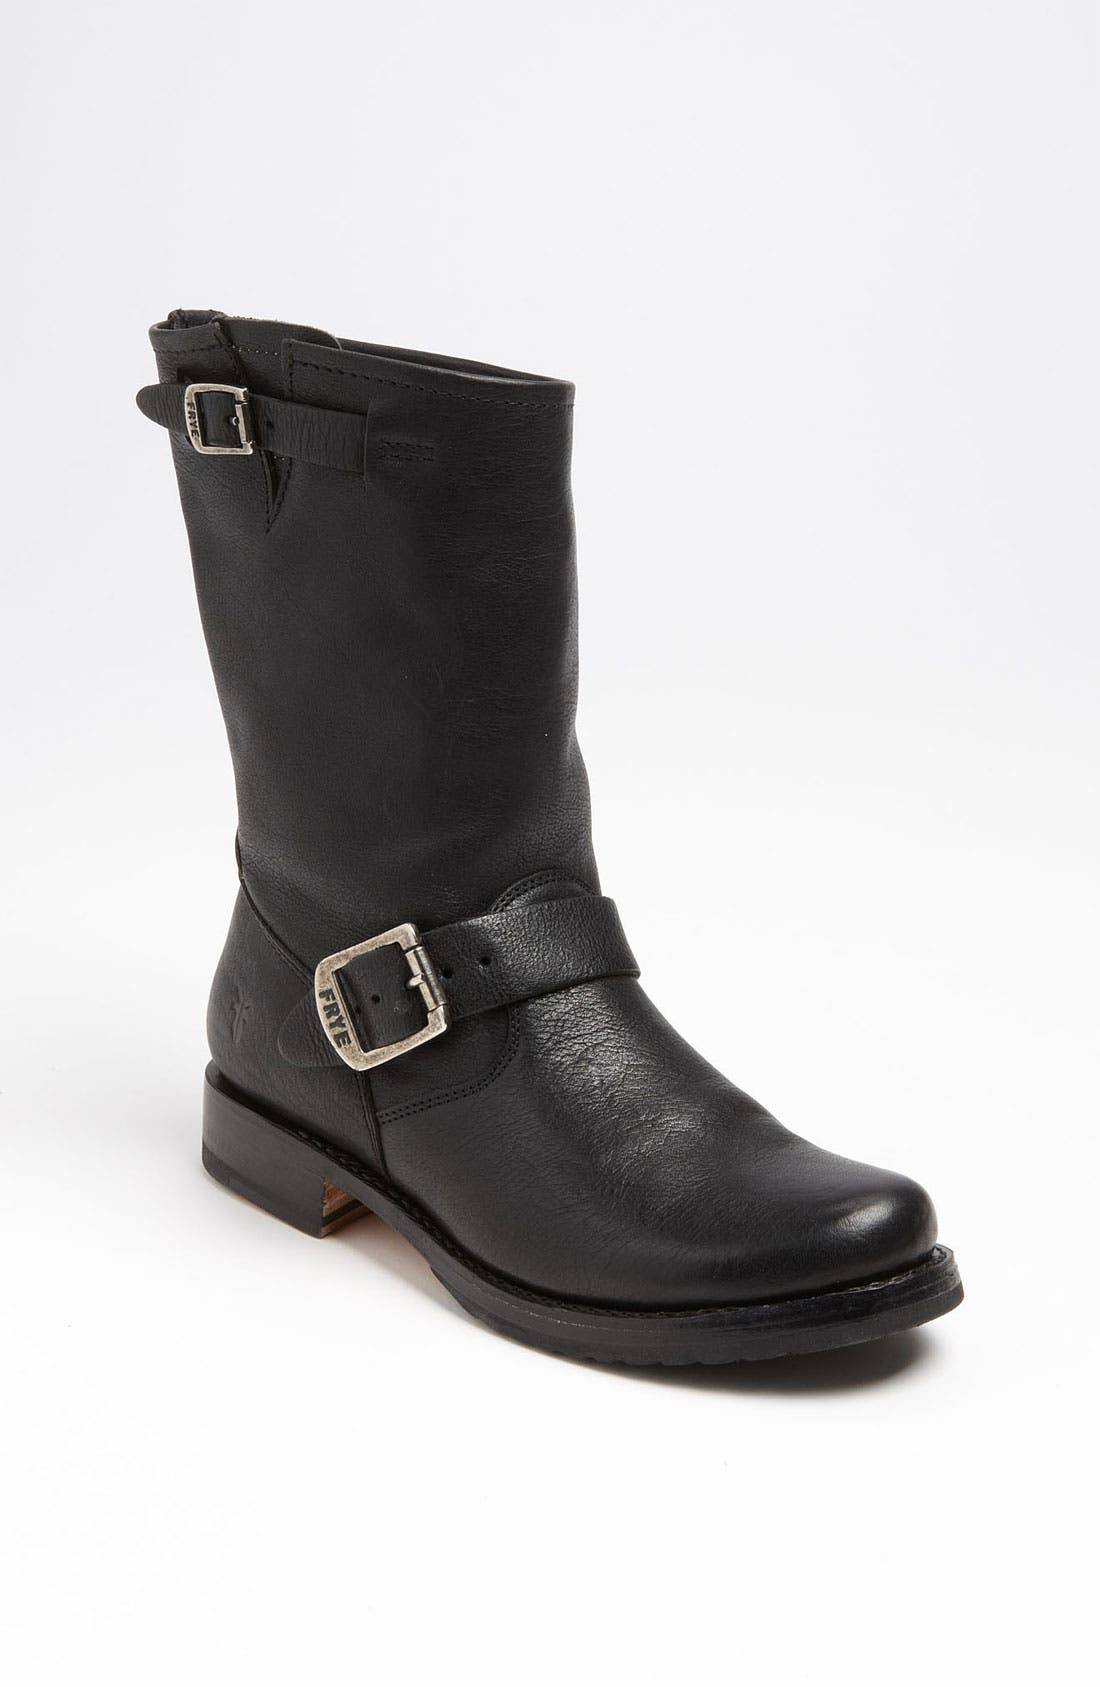 Main Image - Frye 'Veronica' Short Boot